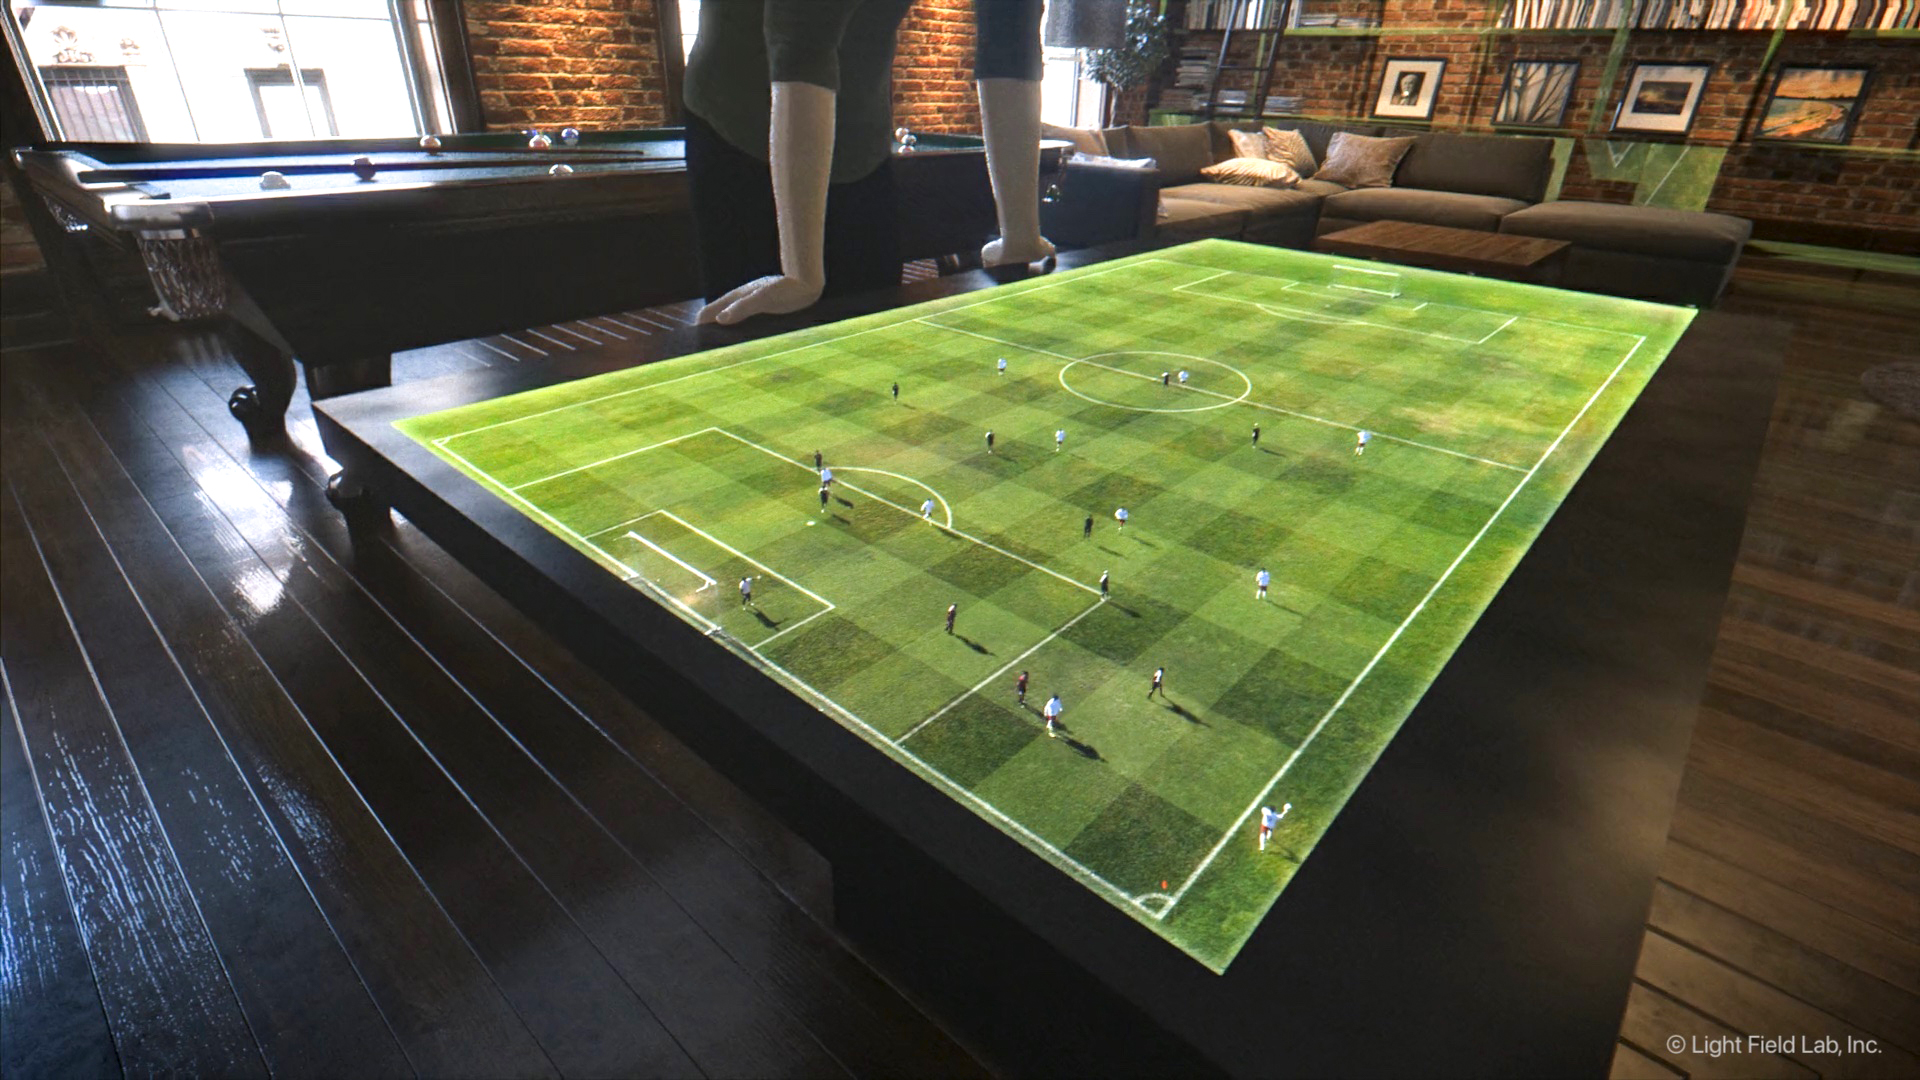 Future vision art of SolidLight Display showing a holographic soccer pitch